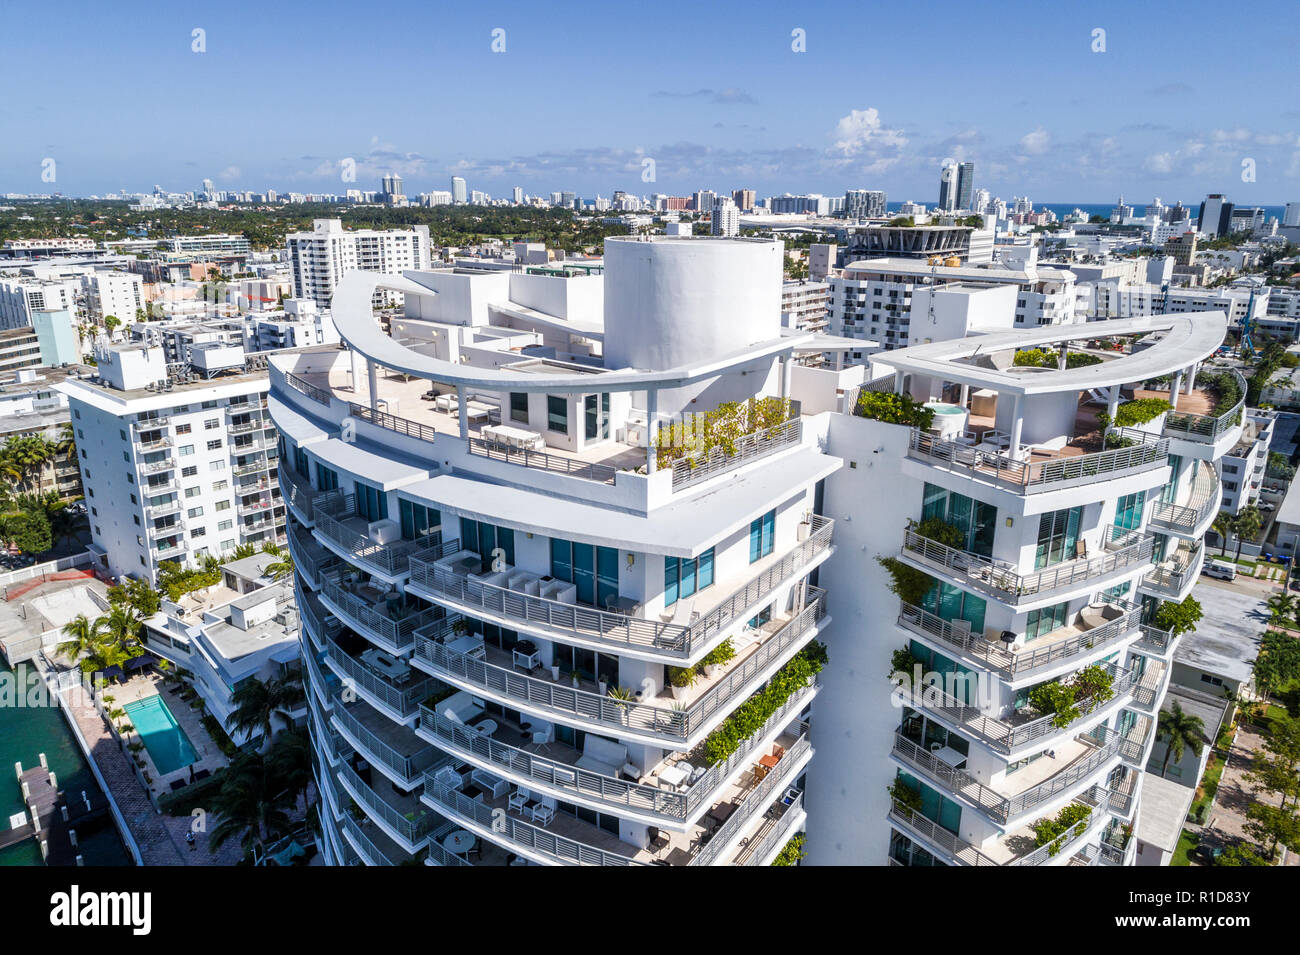 Miami Beach Florida Capri South Beach rooftop terrace balconies aerial overhead bird's eye view above - Stock Image